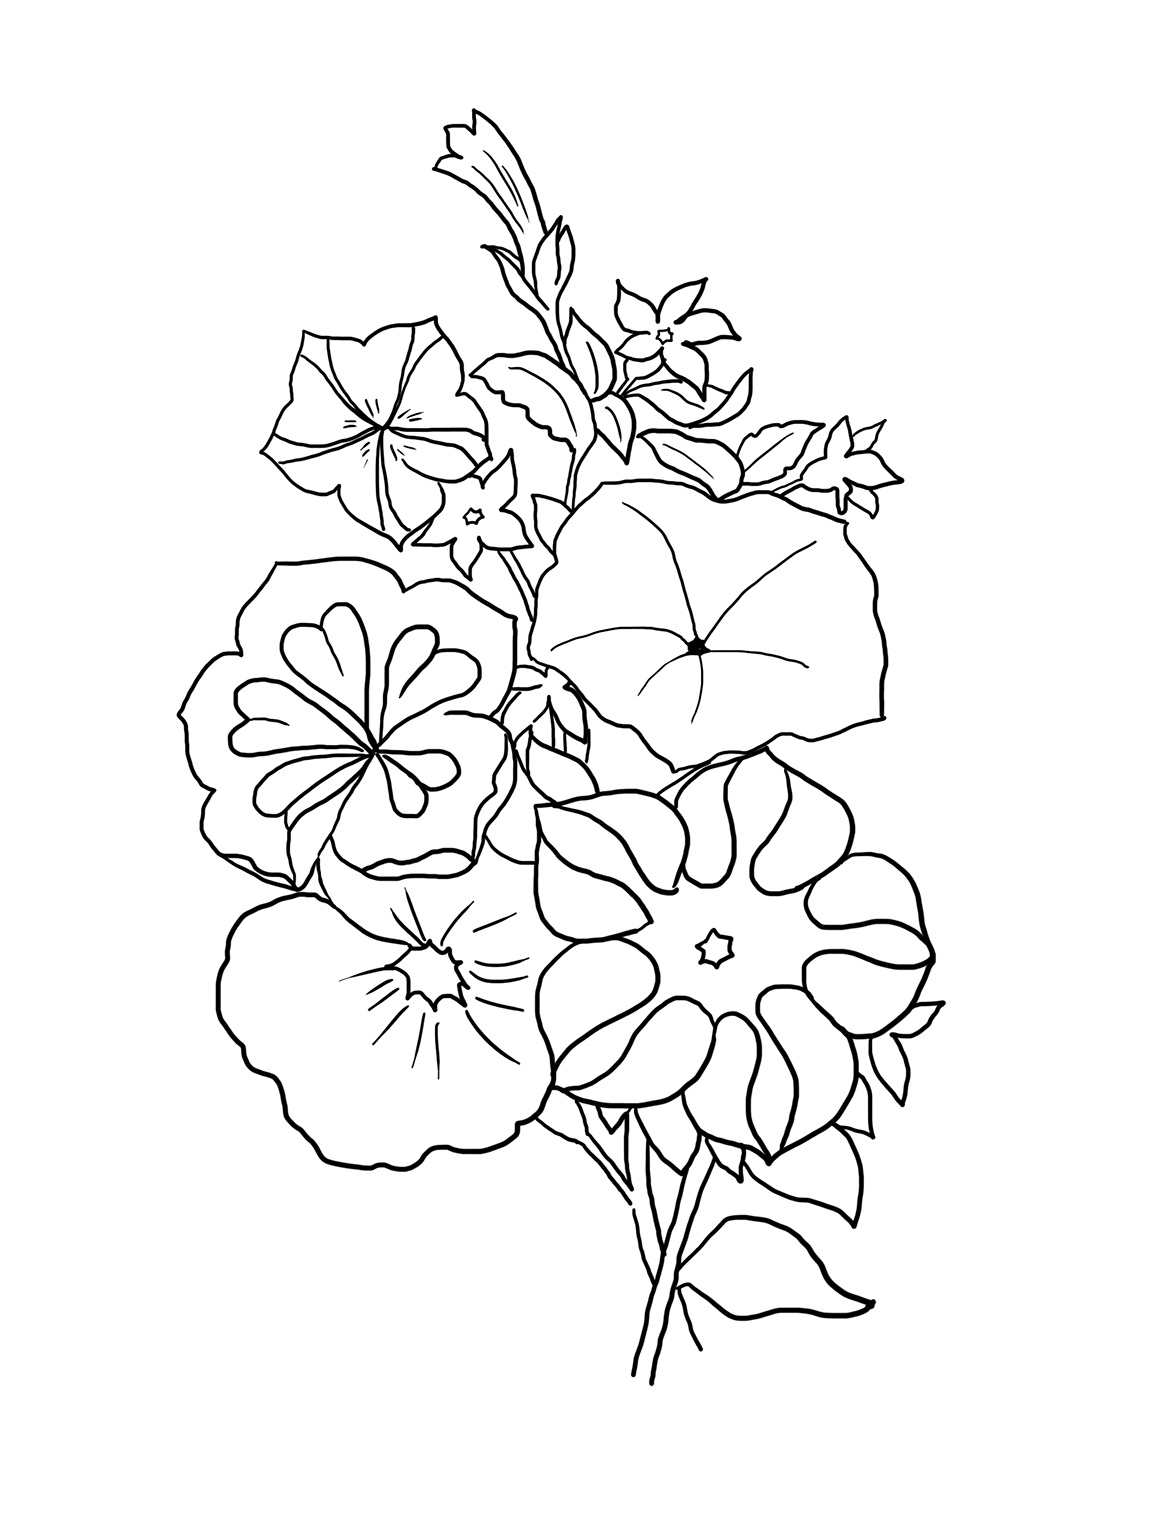 coloring pages about flowers roses flowers coloring page free printable coloring pages coloring flowers pages about